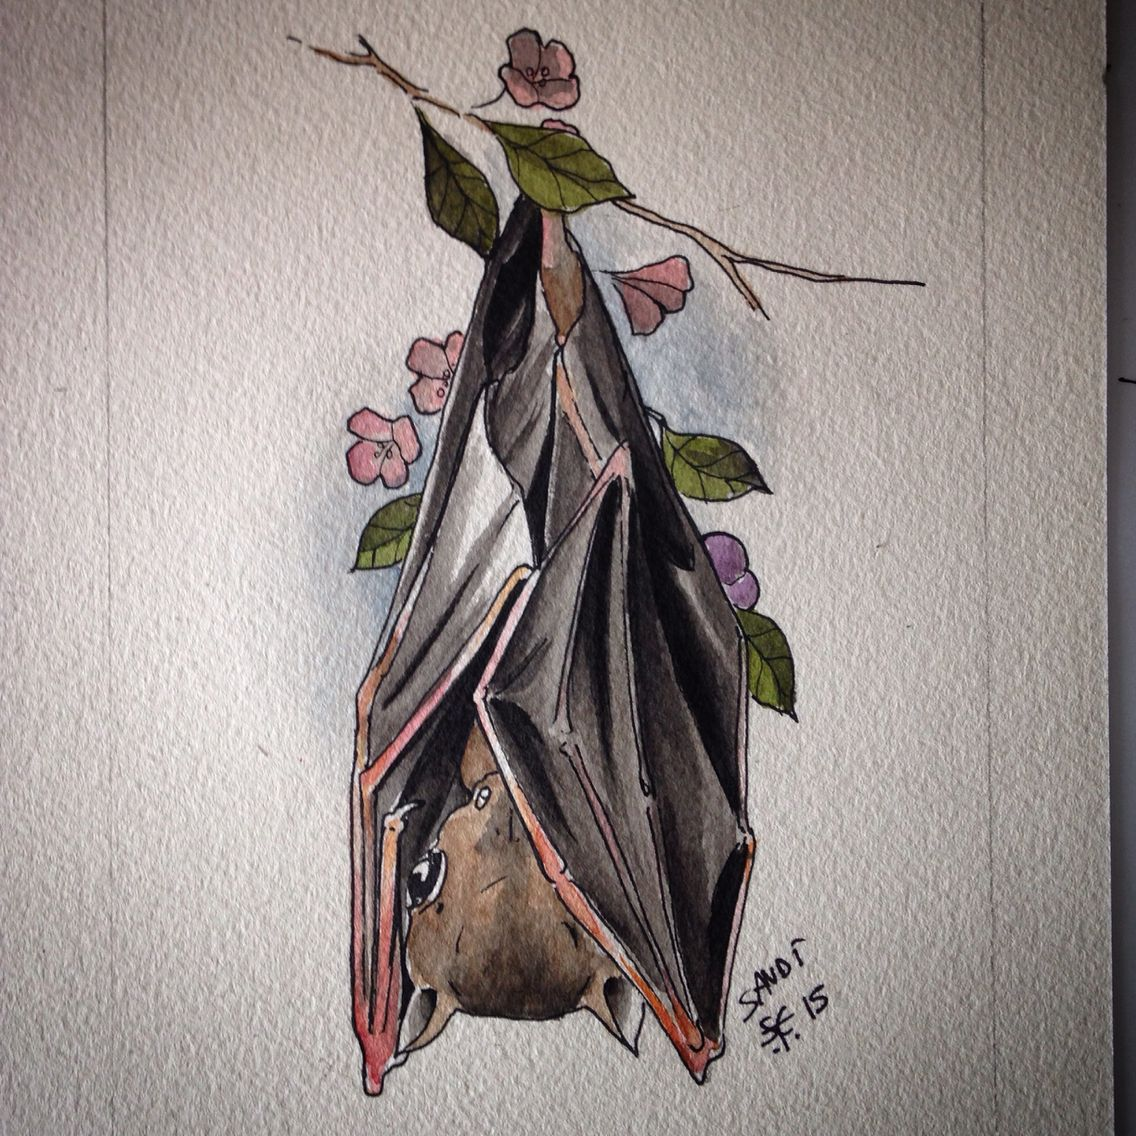 Bat Tattoos Designs Ideas And Meaning: NIGHT LOVER Fruit Bat Tattoo Design Watercolor